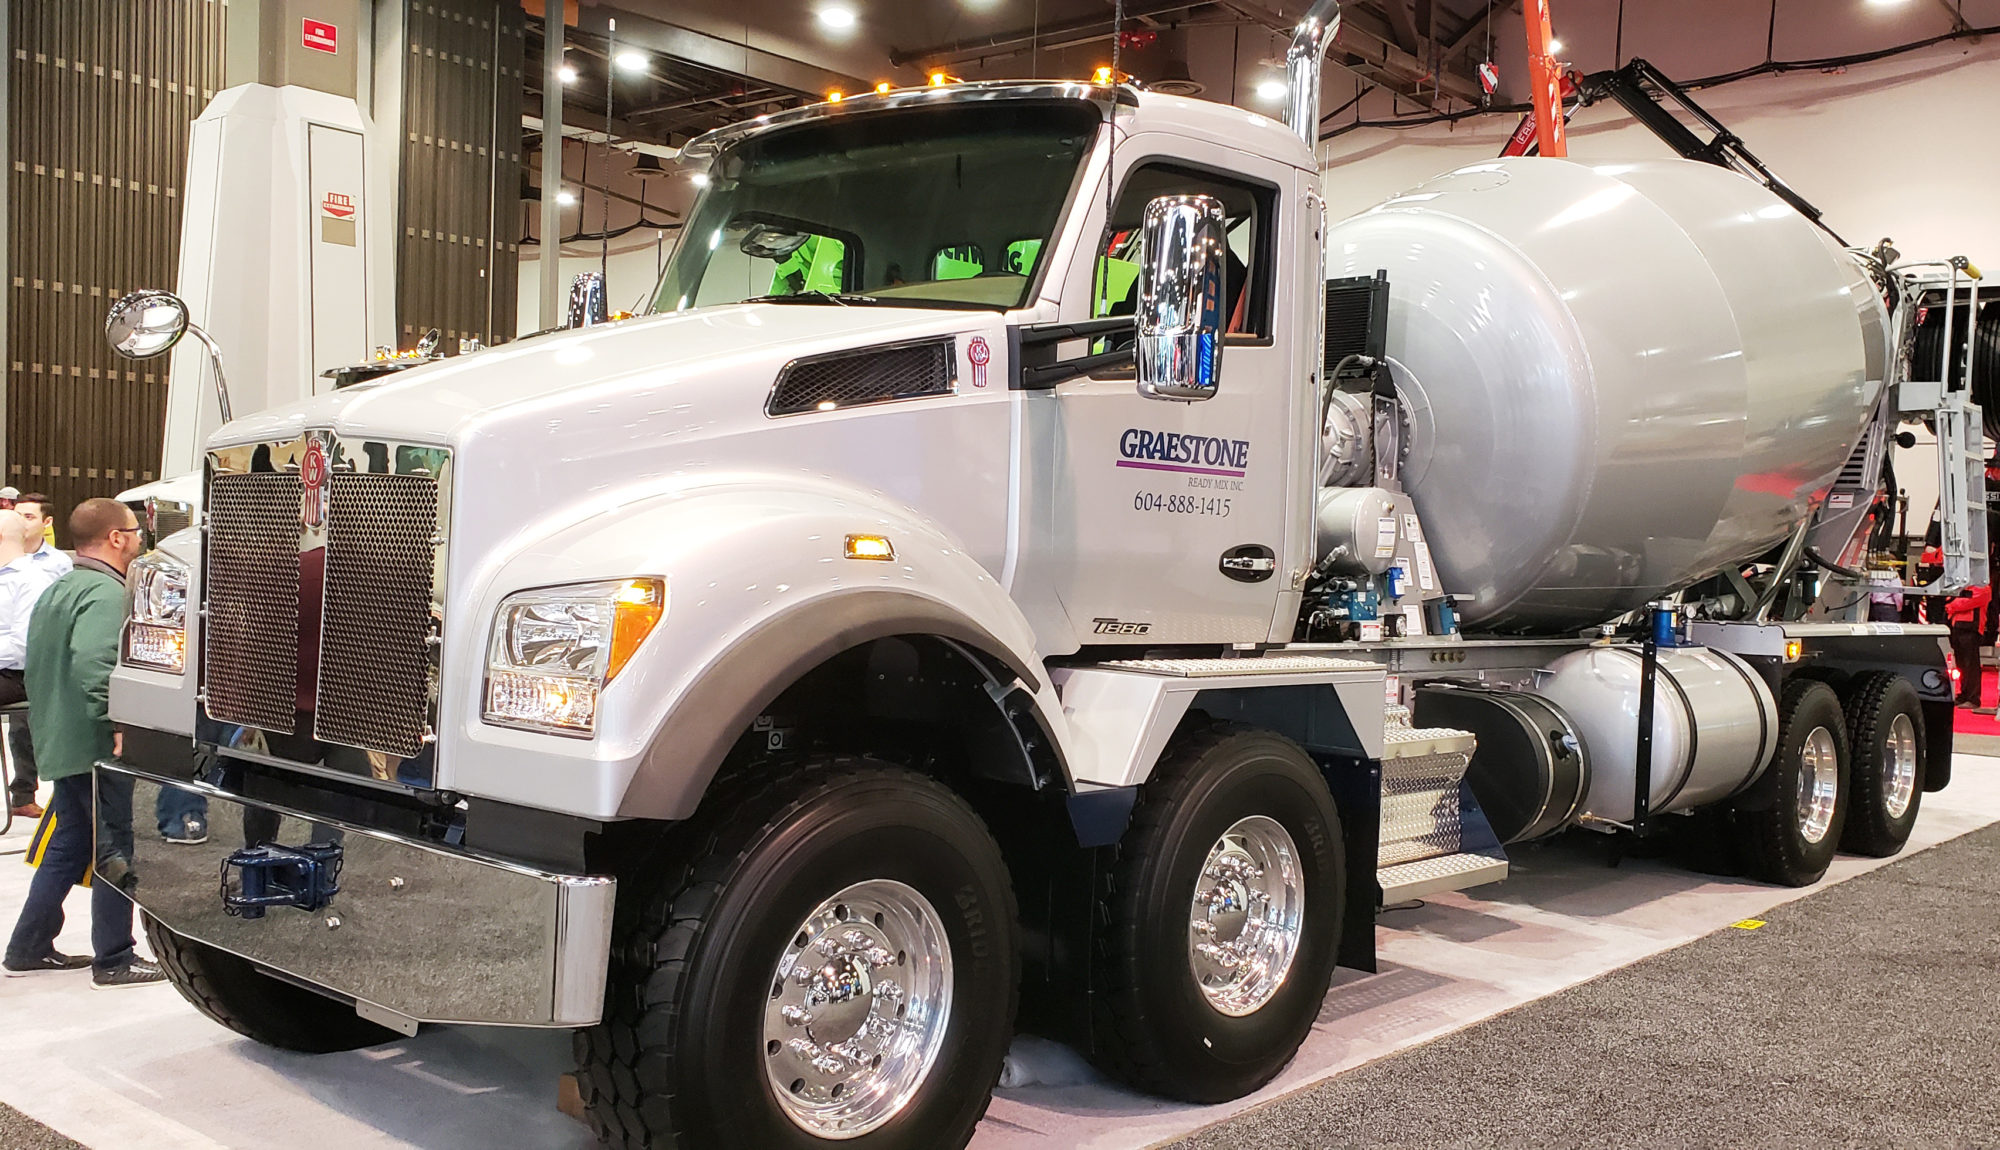 Kenworth, Peterbilt, Mack showcase offerings during World of